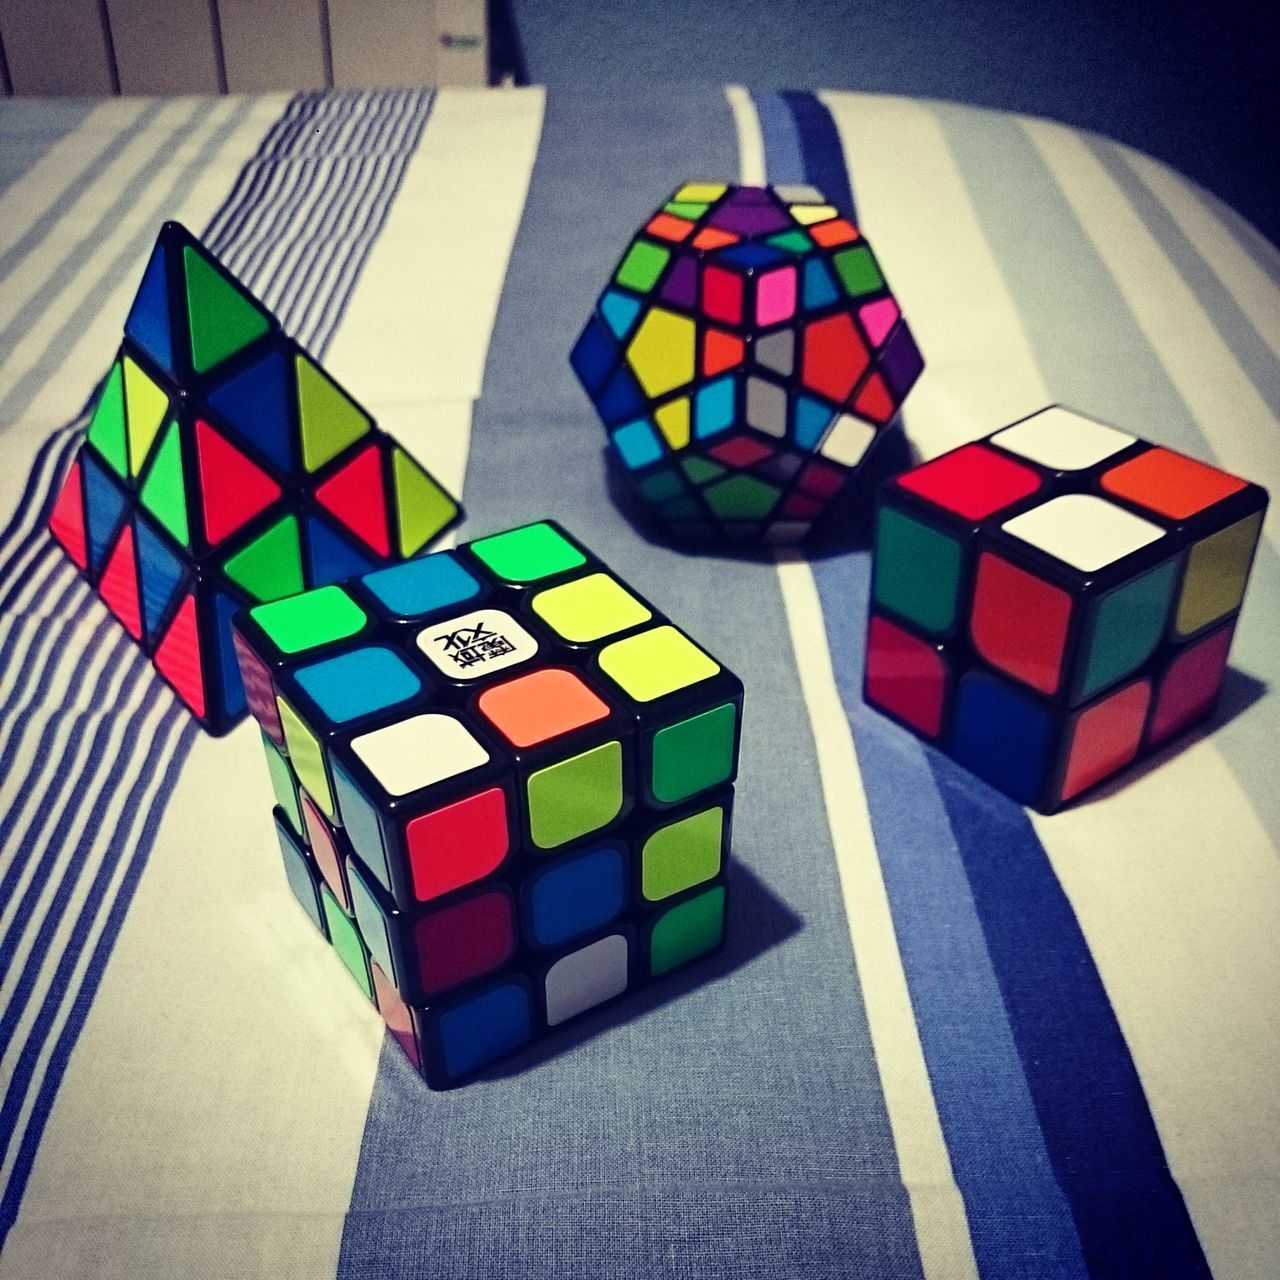 CuboRubik Cubo Moyu Pyraminx Dayan Shengsou Multi Colored Toy Block Colourd Puzzle  Hobby Black Green White Blue Red Orange Photo Photography No People